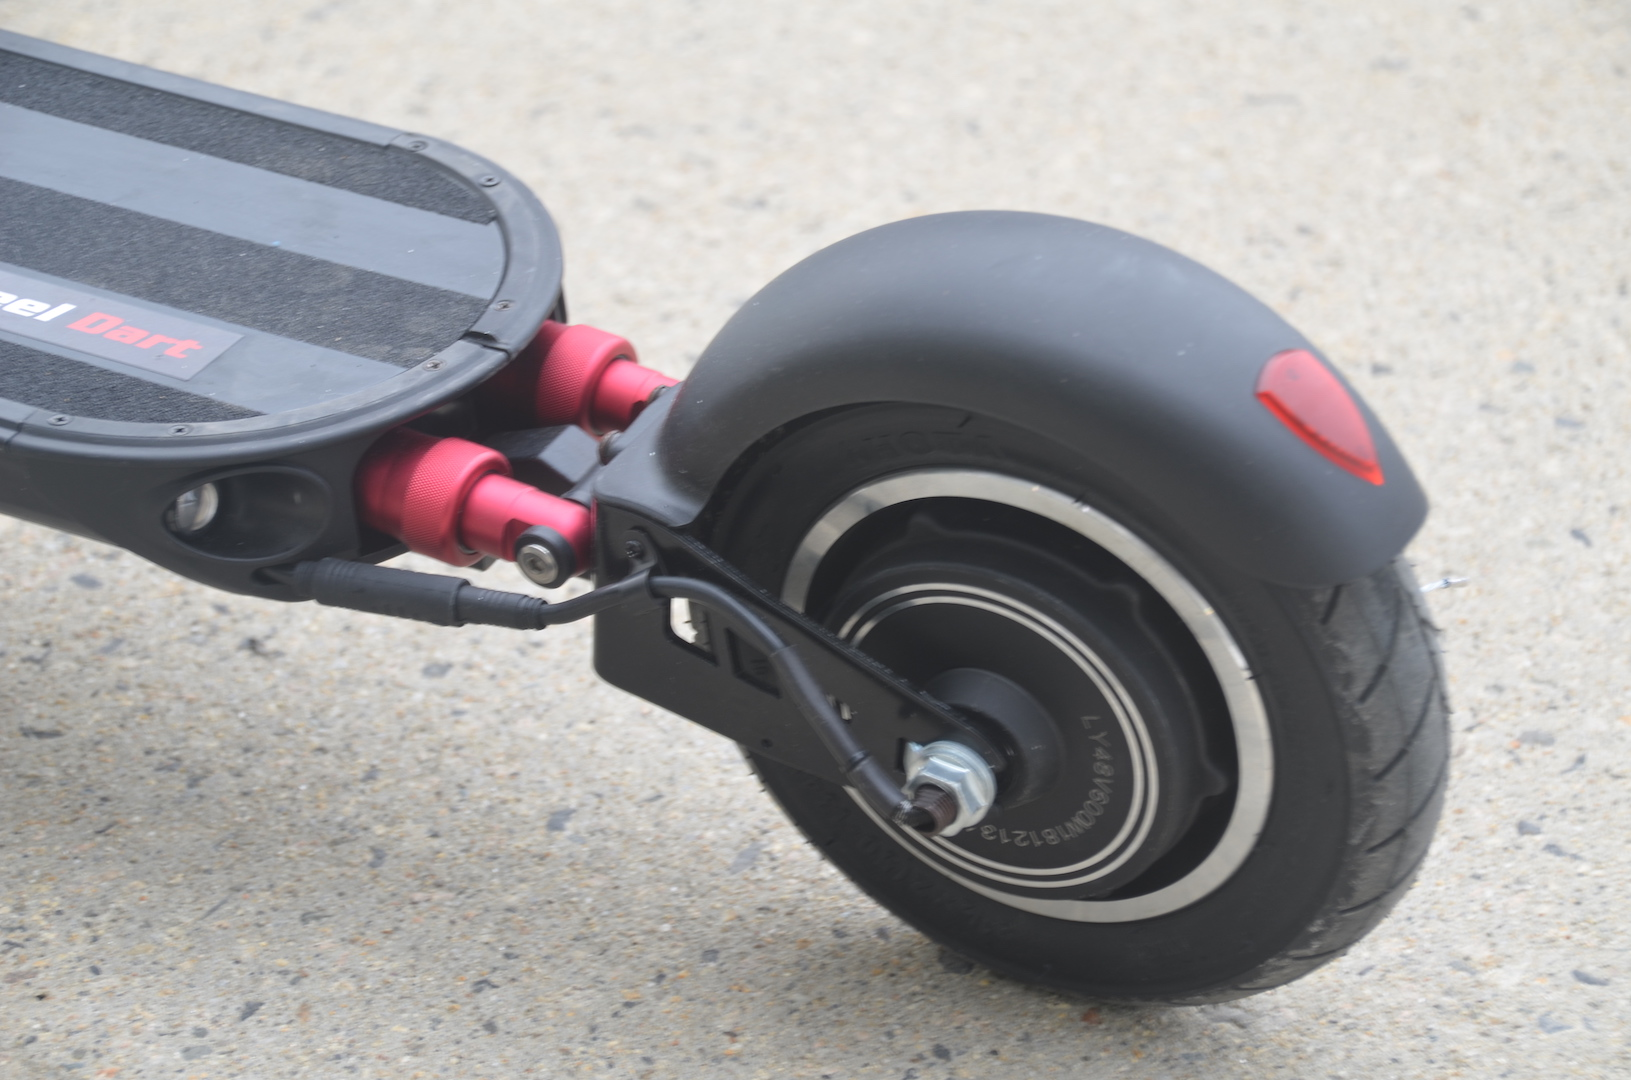 The Turbowheel Dart 25 mph electric scooter is 1 2 kW worth of fun